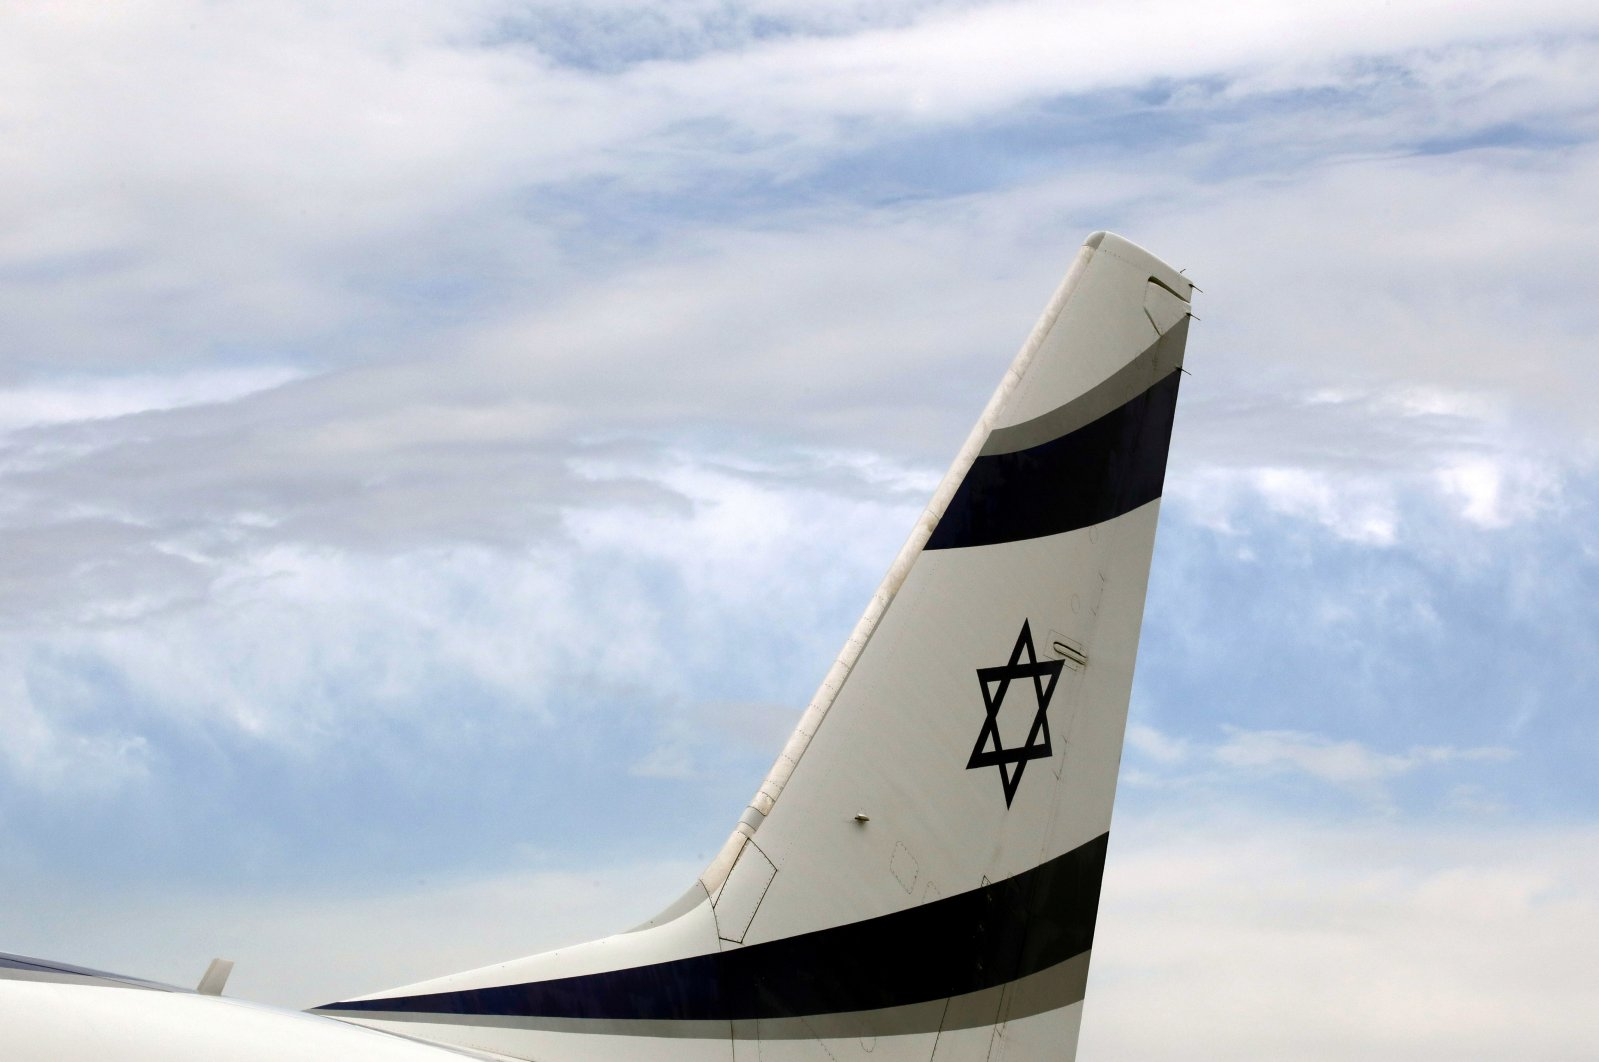 An Israel El Al airlines plane is seen after its landing at Nice international airport, France, April 4, 2019. (Reuters Photo)